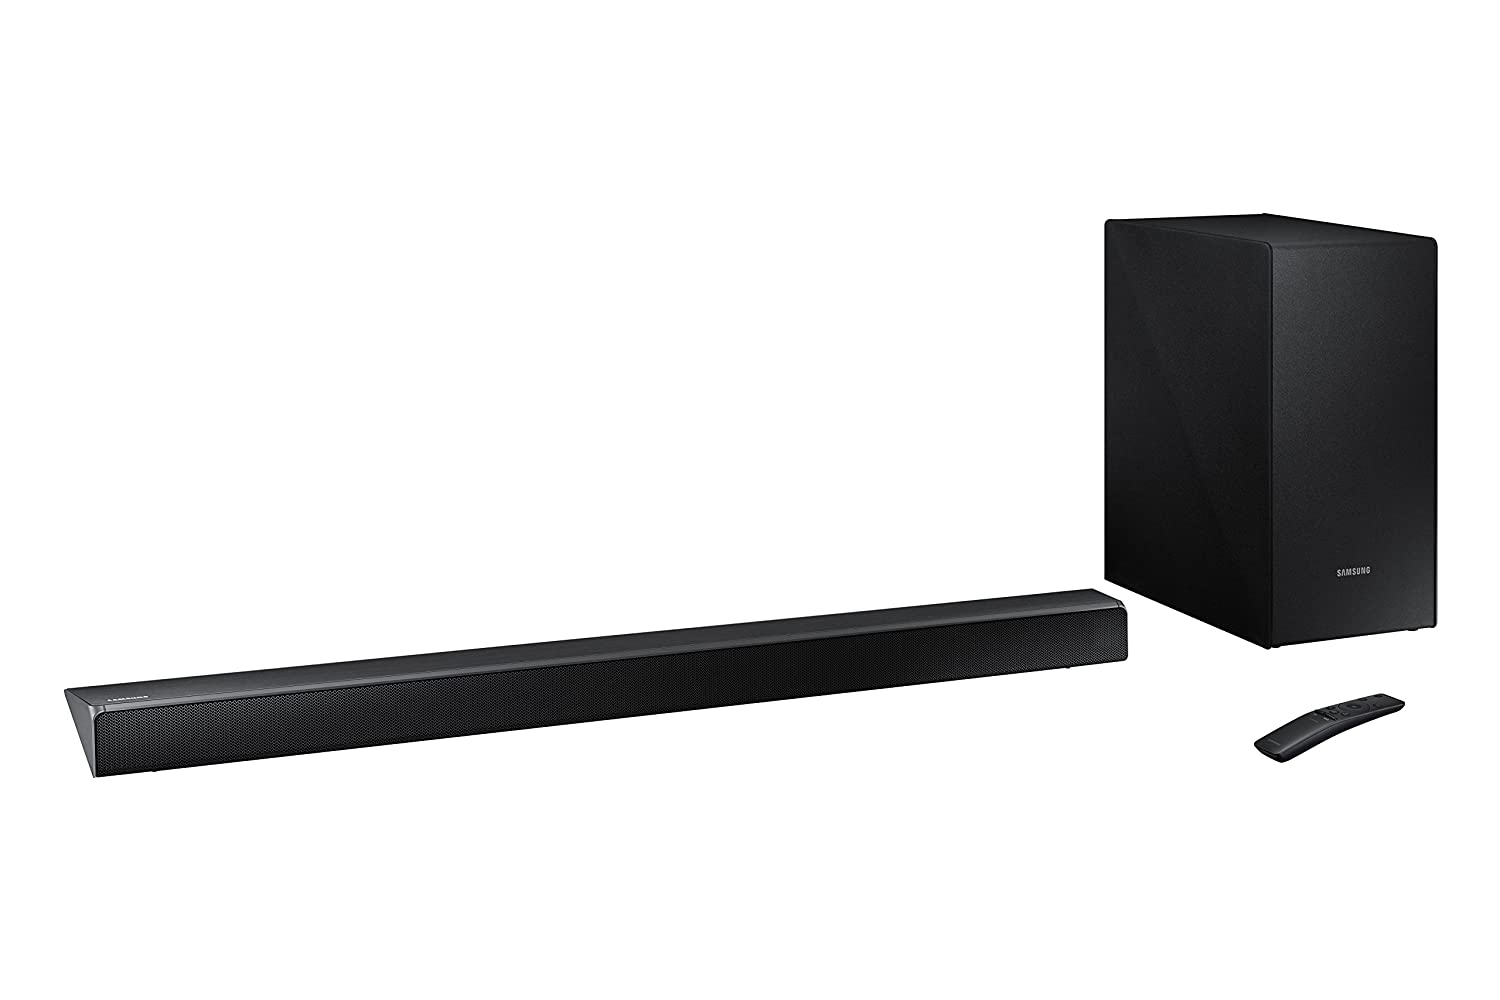 HW-N450 Samsung Soundbar Black Friday Deal 2019